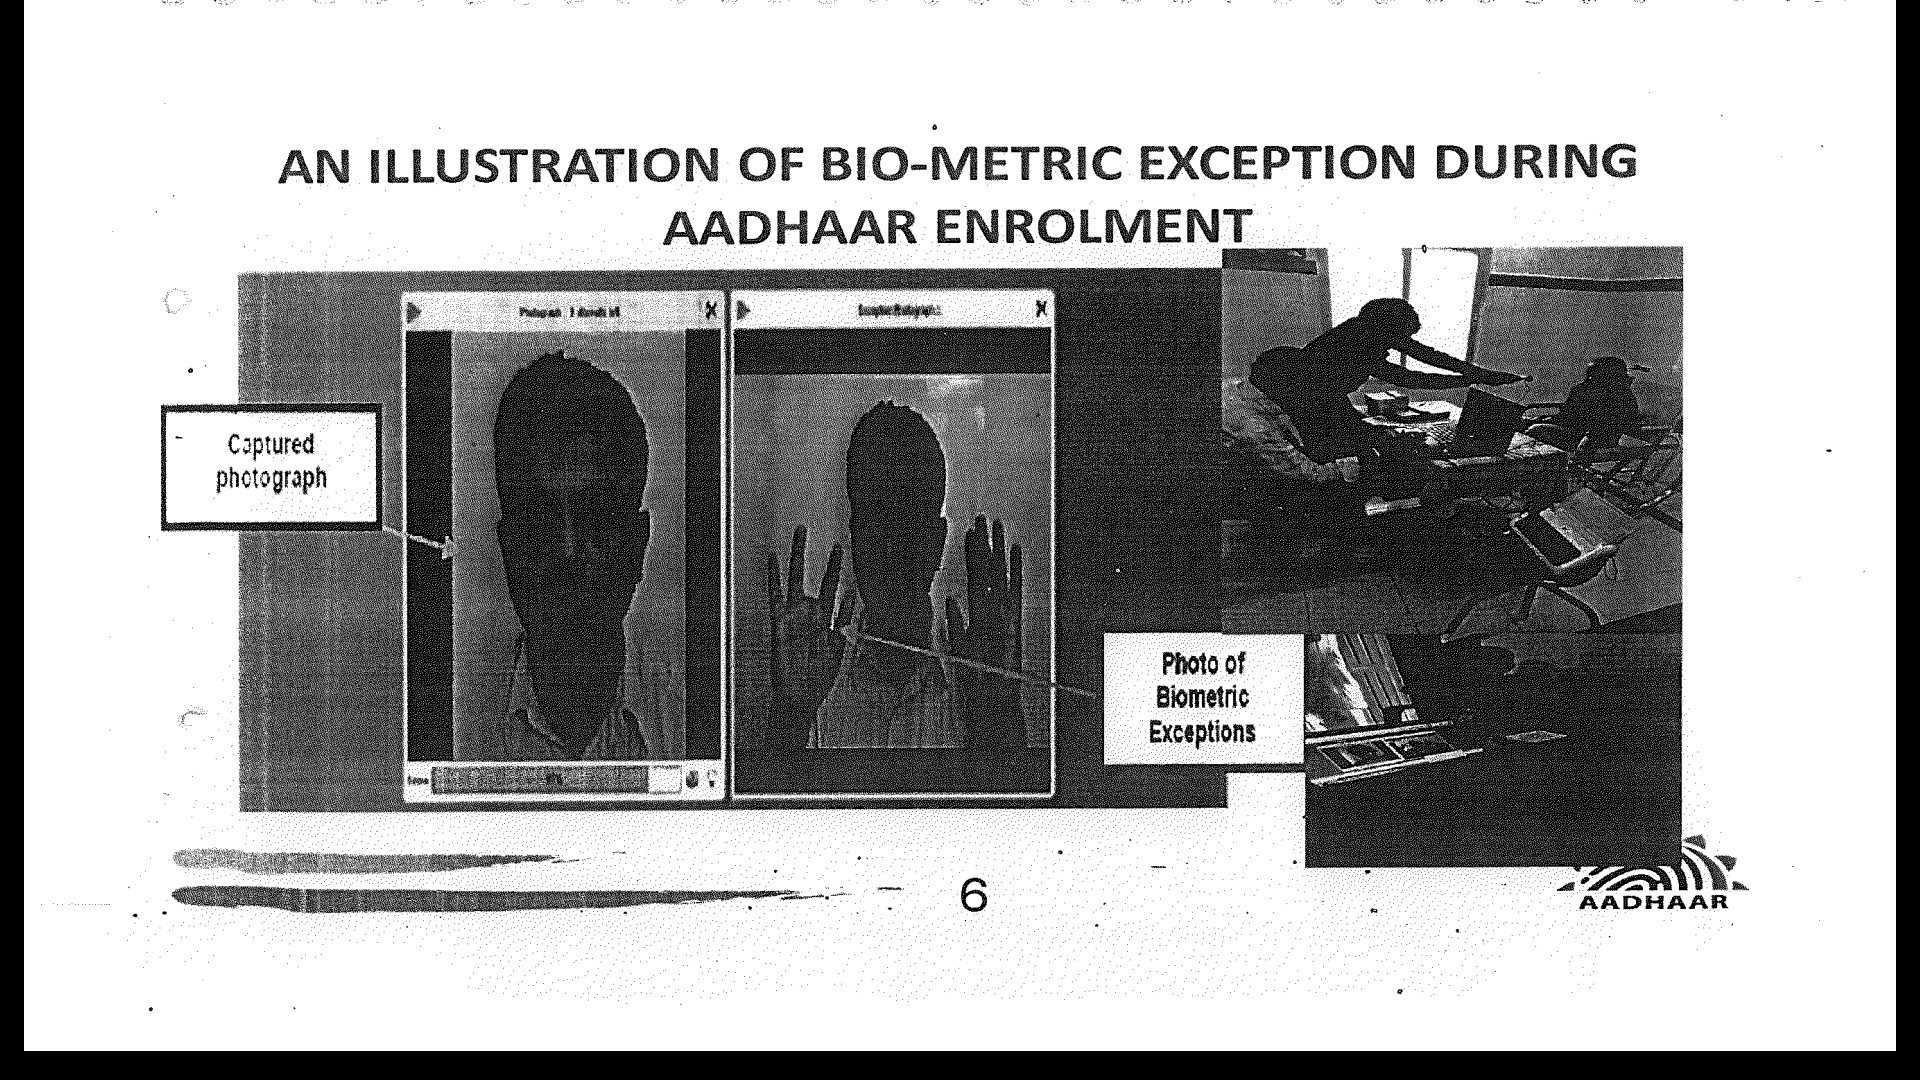 biometric exemption slide